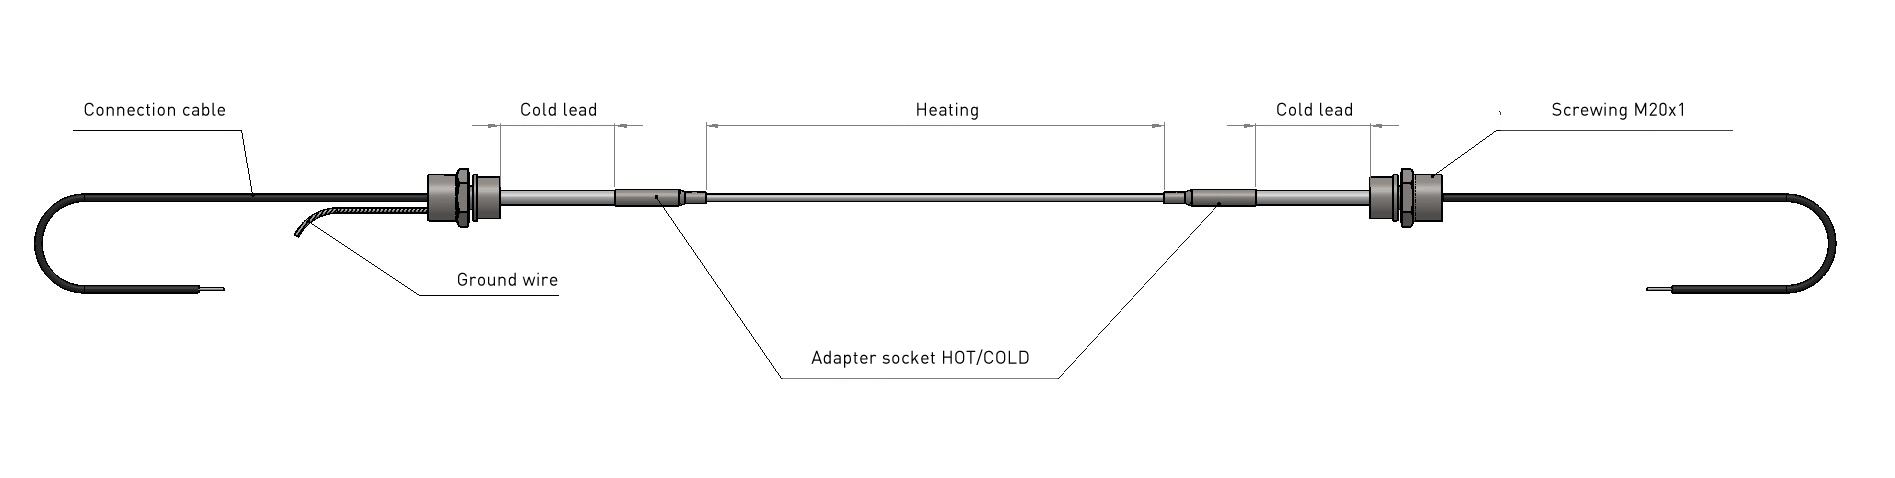 Wiring 2 Baseboard Heaters To 1 Thermostat For Heater